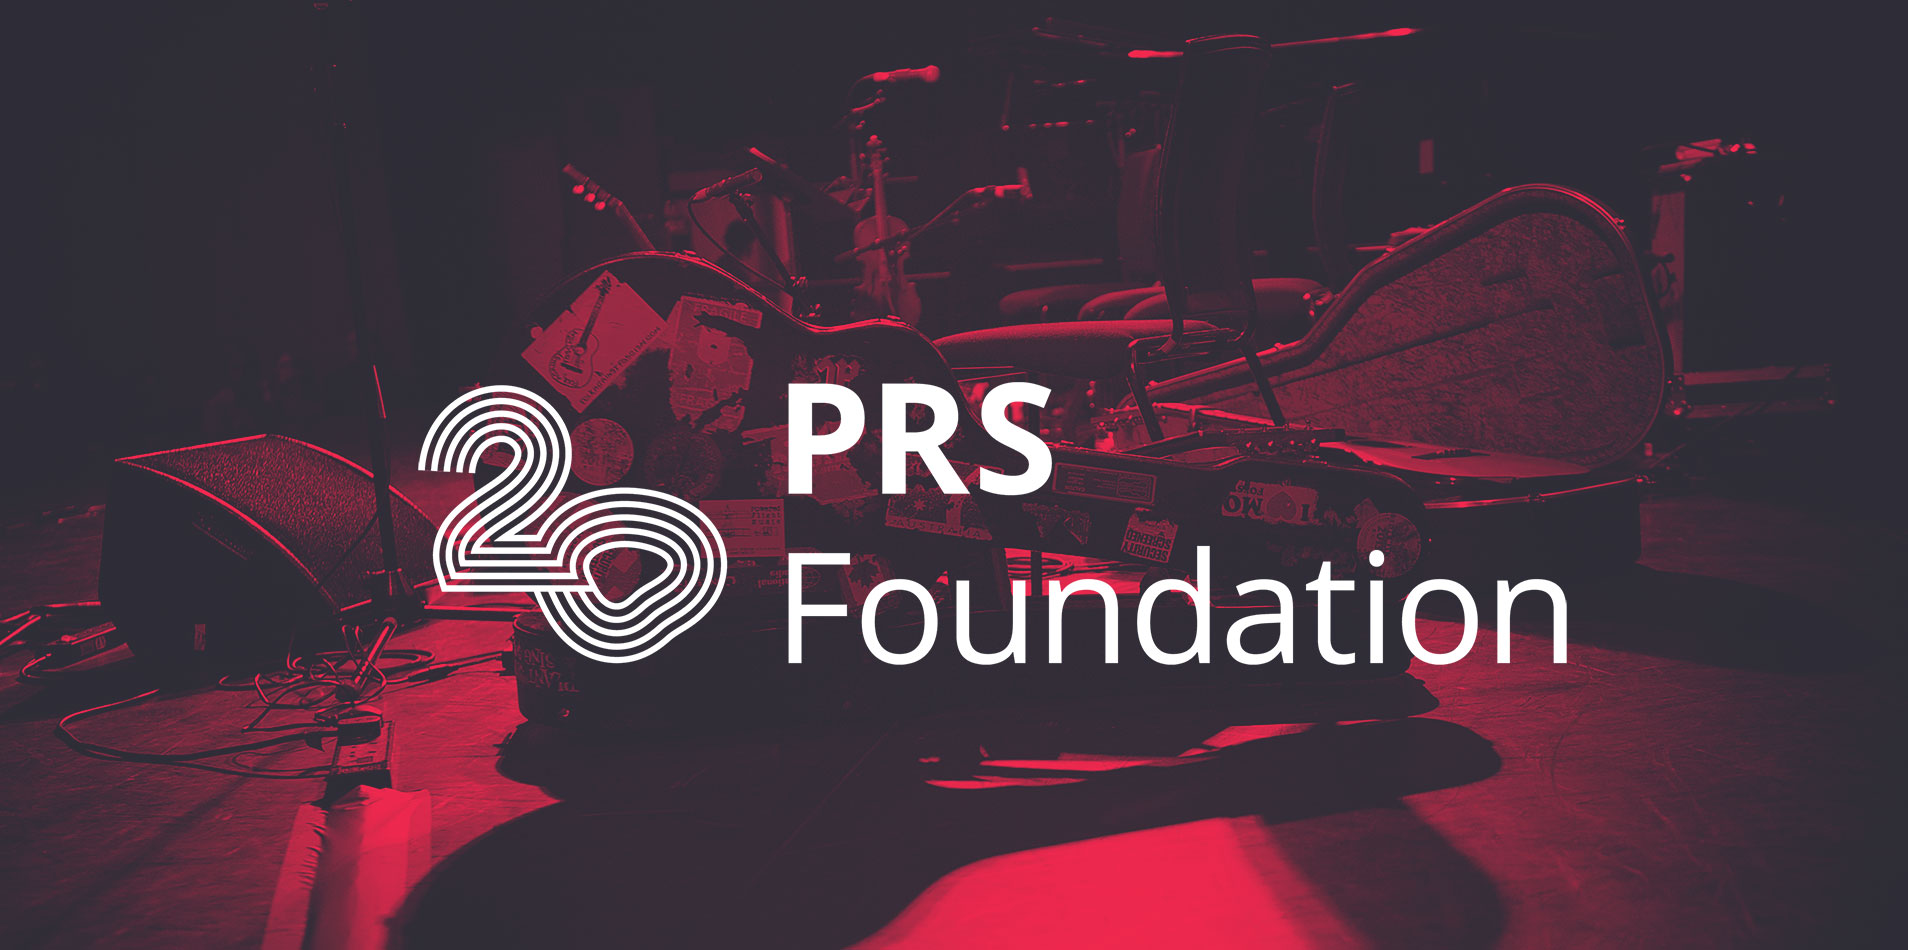 PRS Foundation's 20th Anniversary